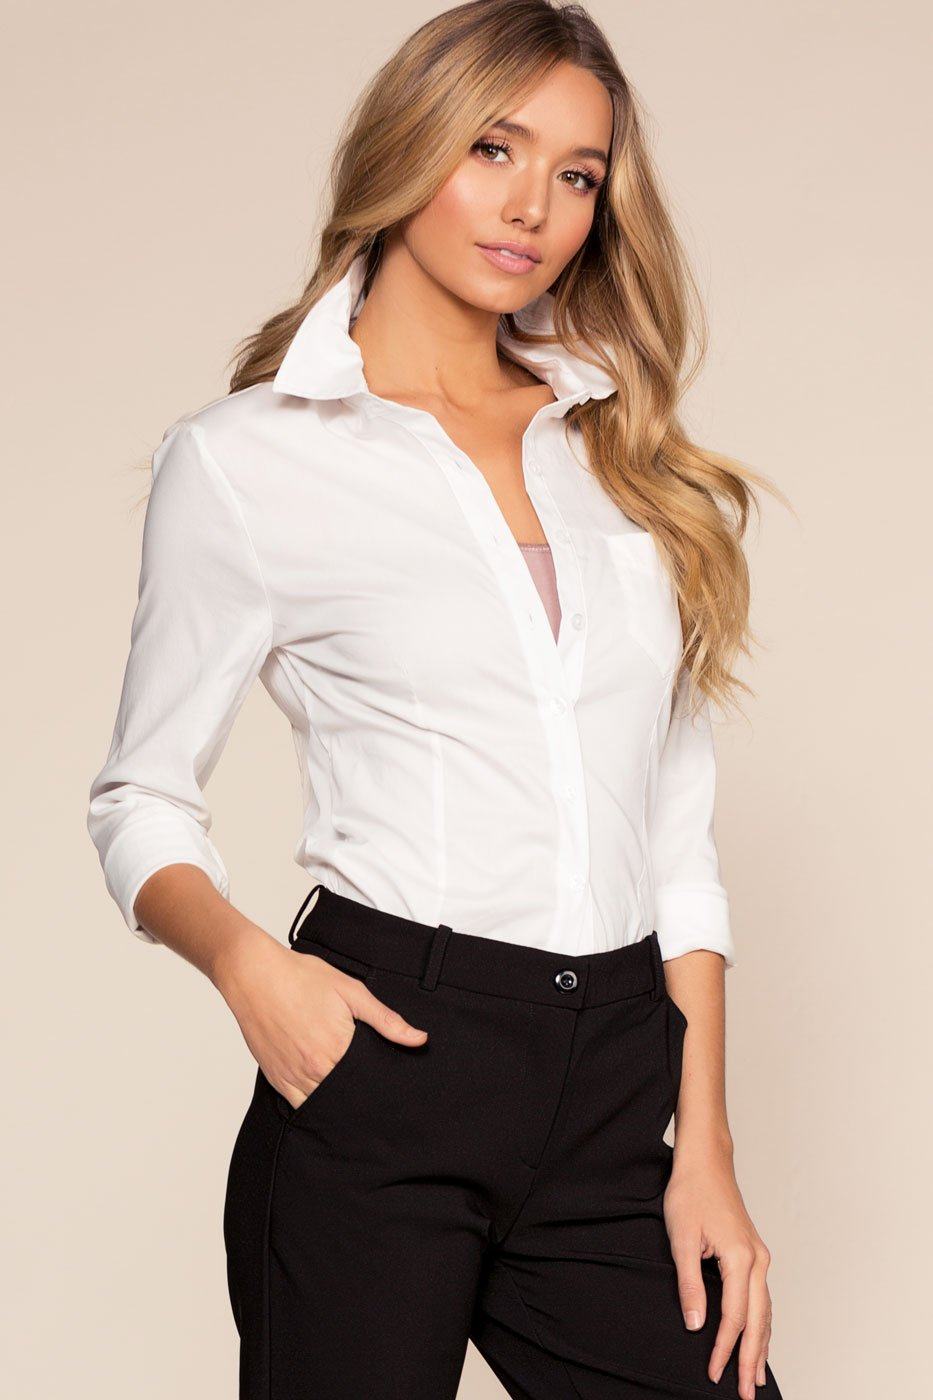 Chic White Buttoned Top